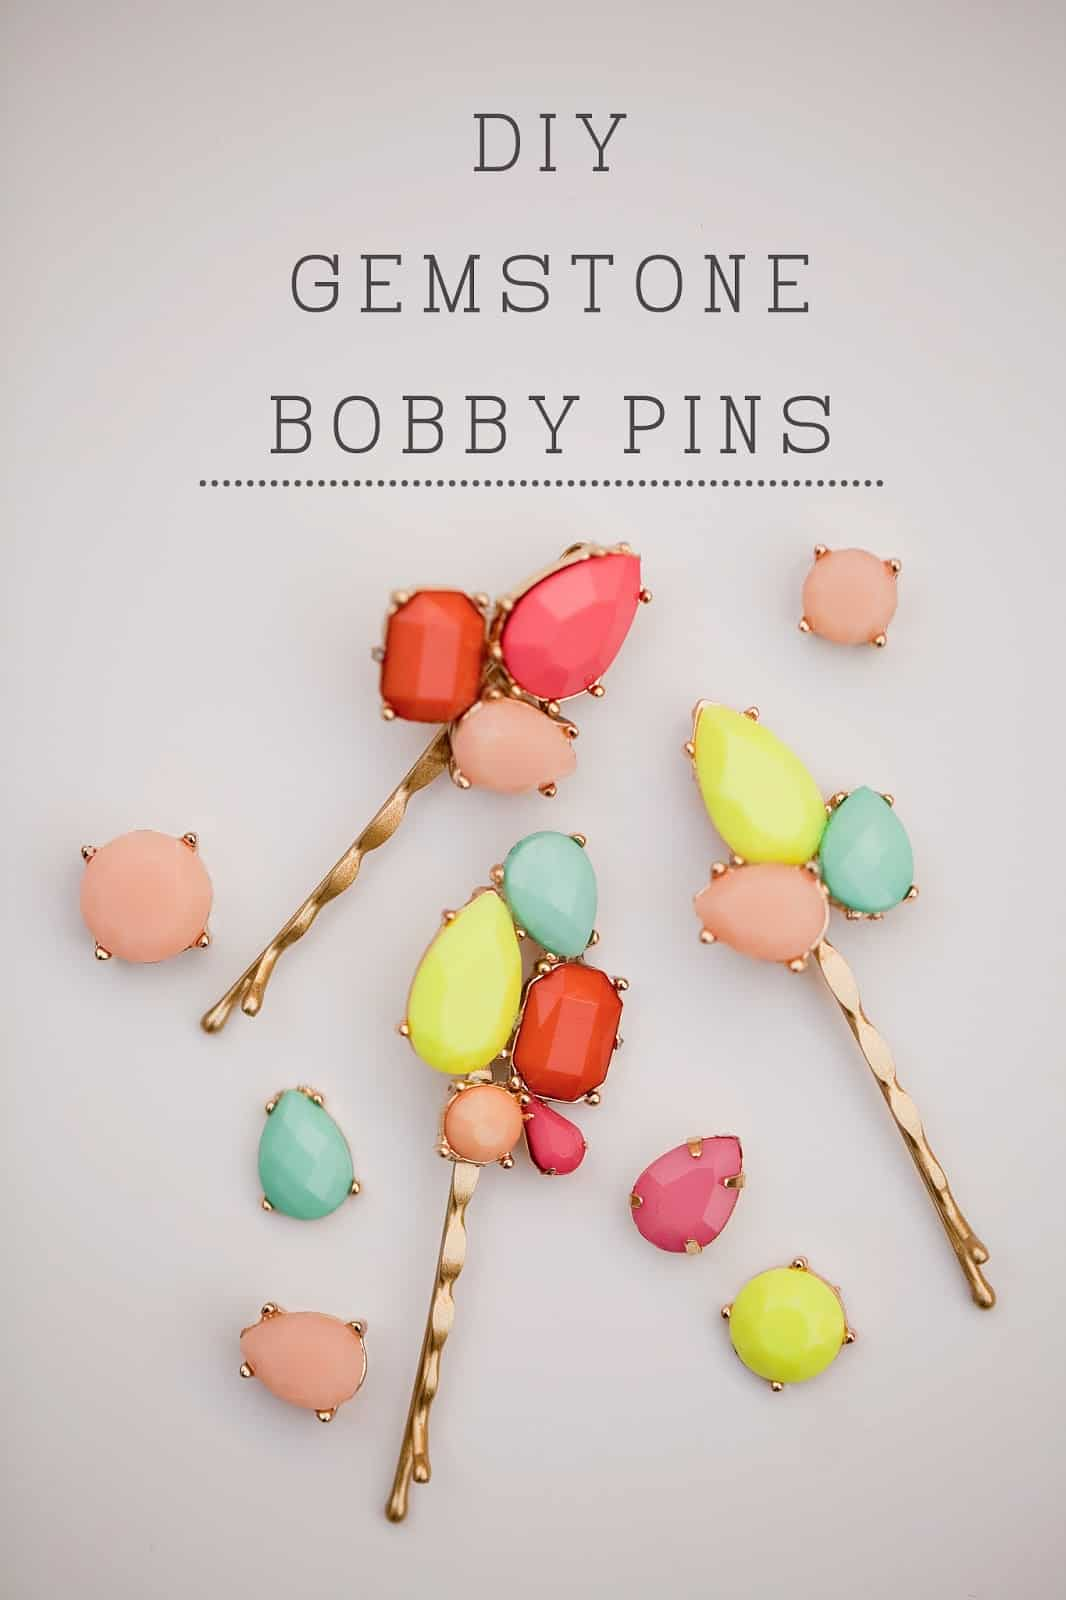 Gemstone bobby pins